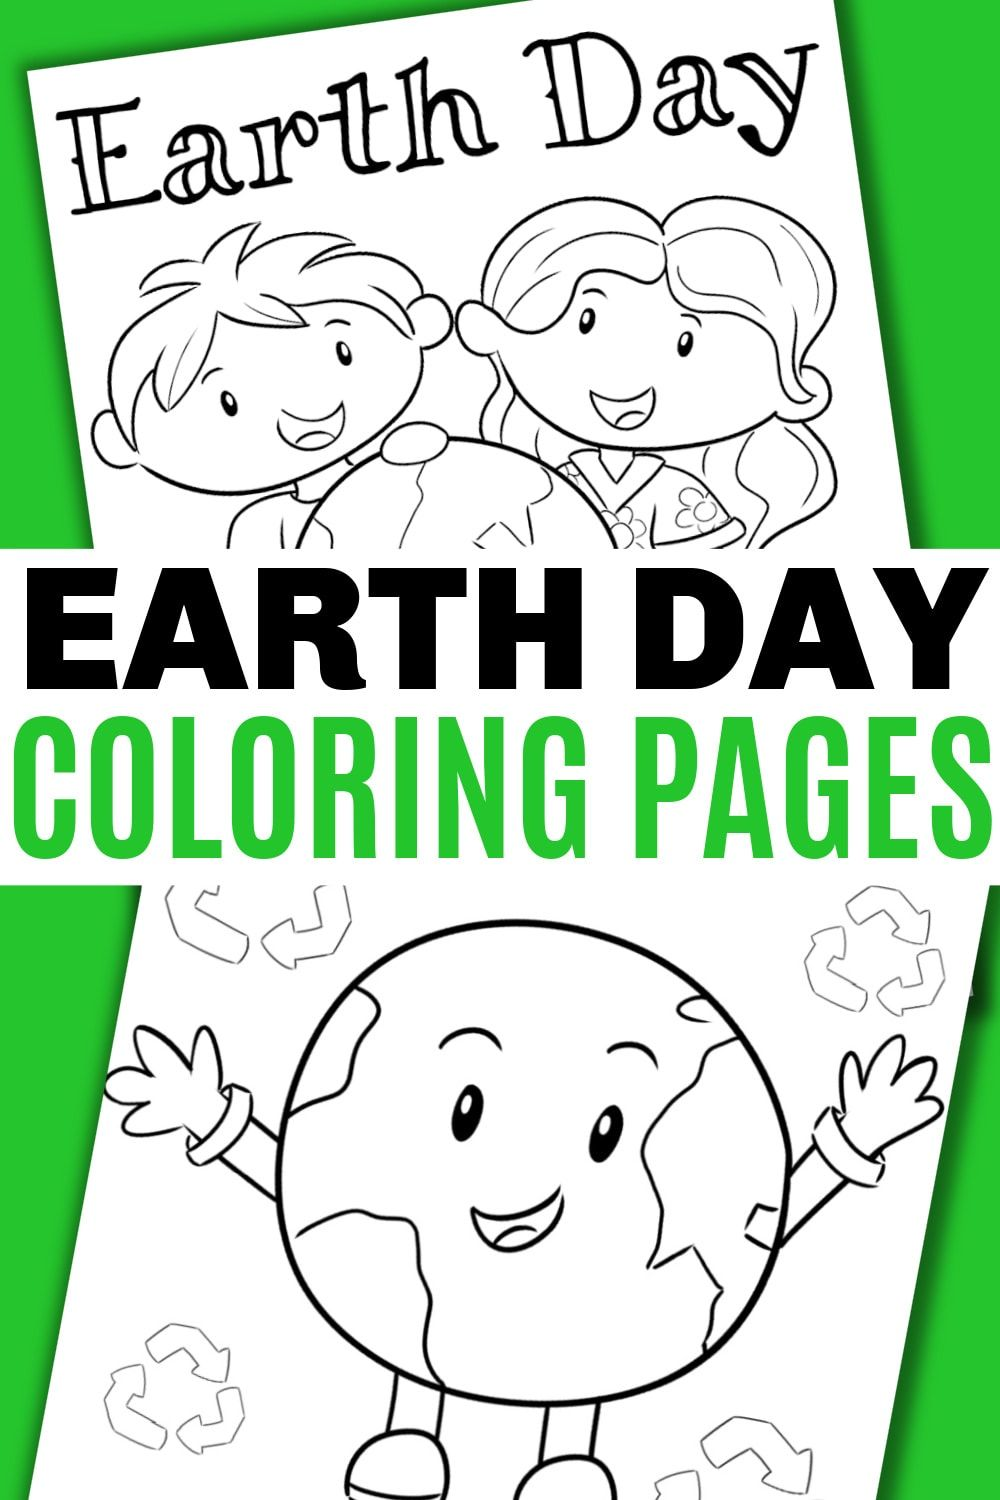 Earth Day Coloring Pages In 2021 Earth Day Coloring Pages Happy Birthday Coloring Pages Coloring Pages For Kids